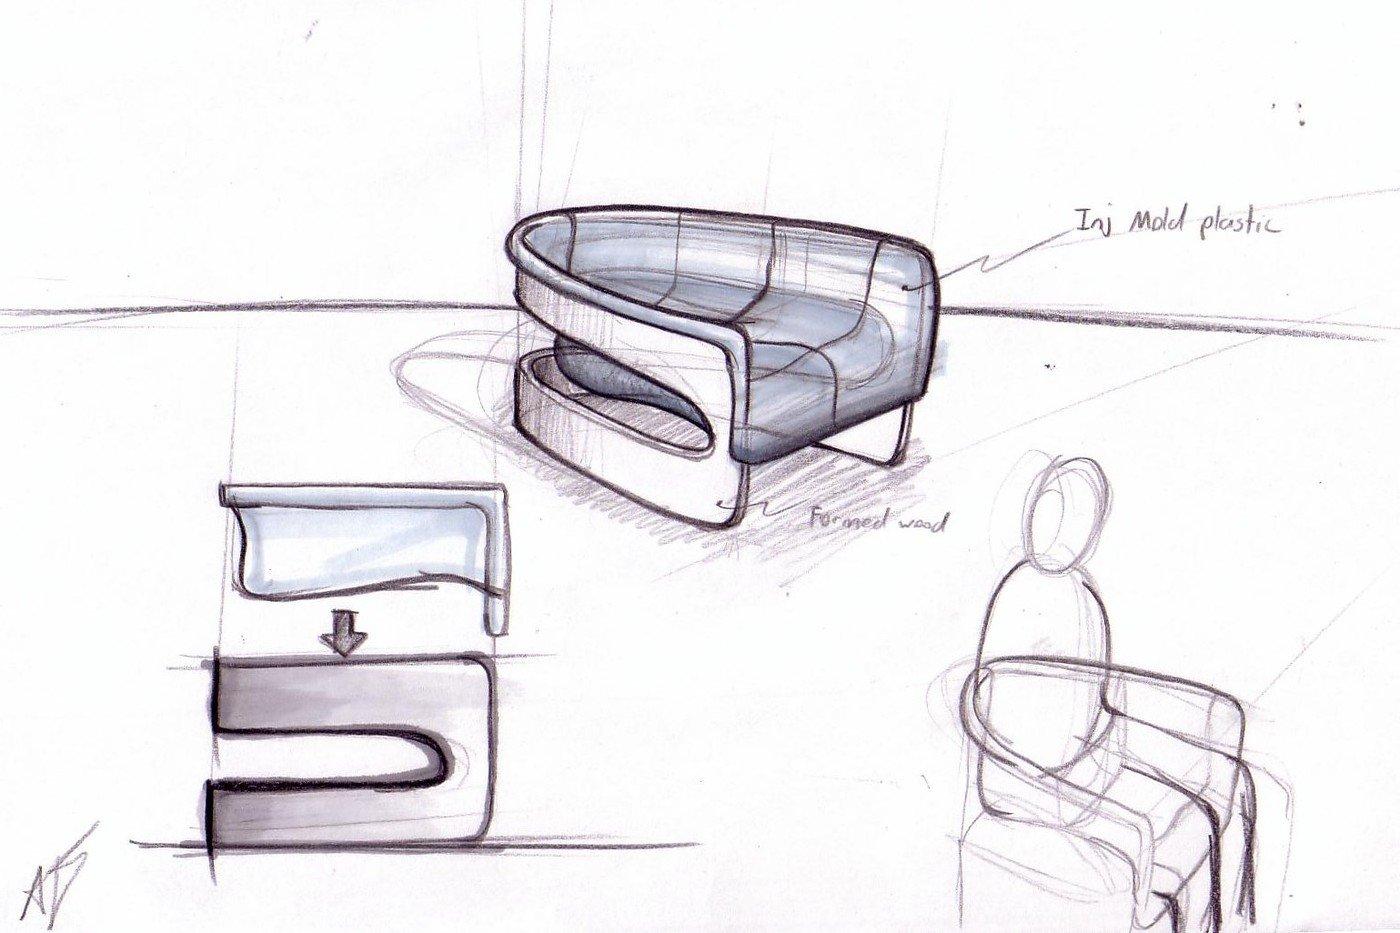 Product Design Sketches Ideation By Antoine Desjardins